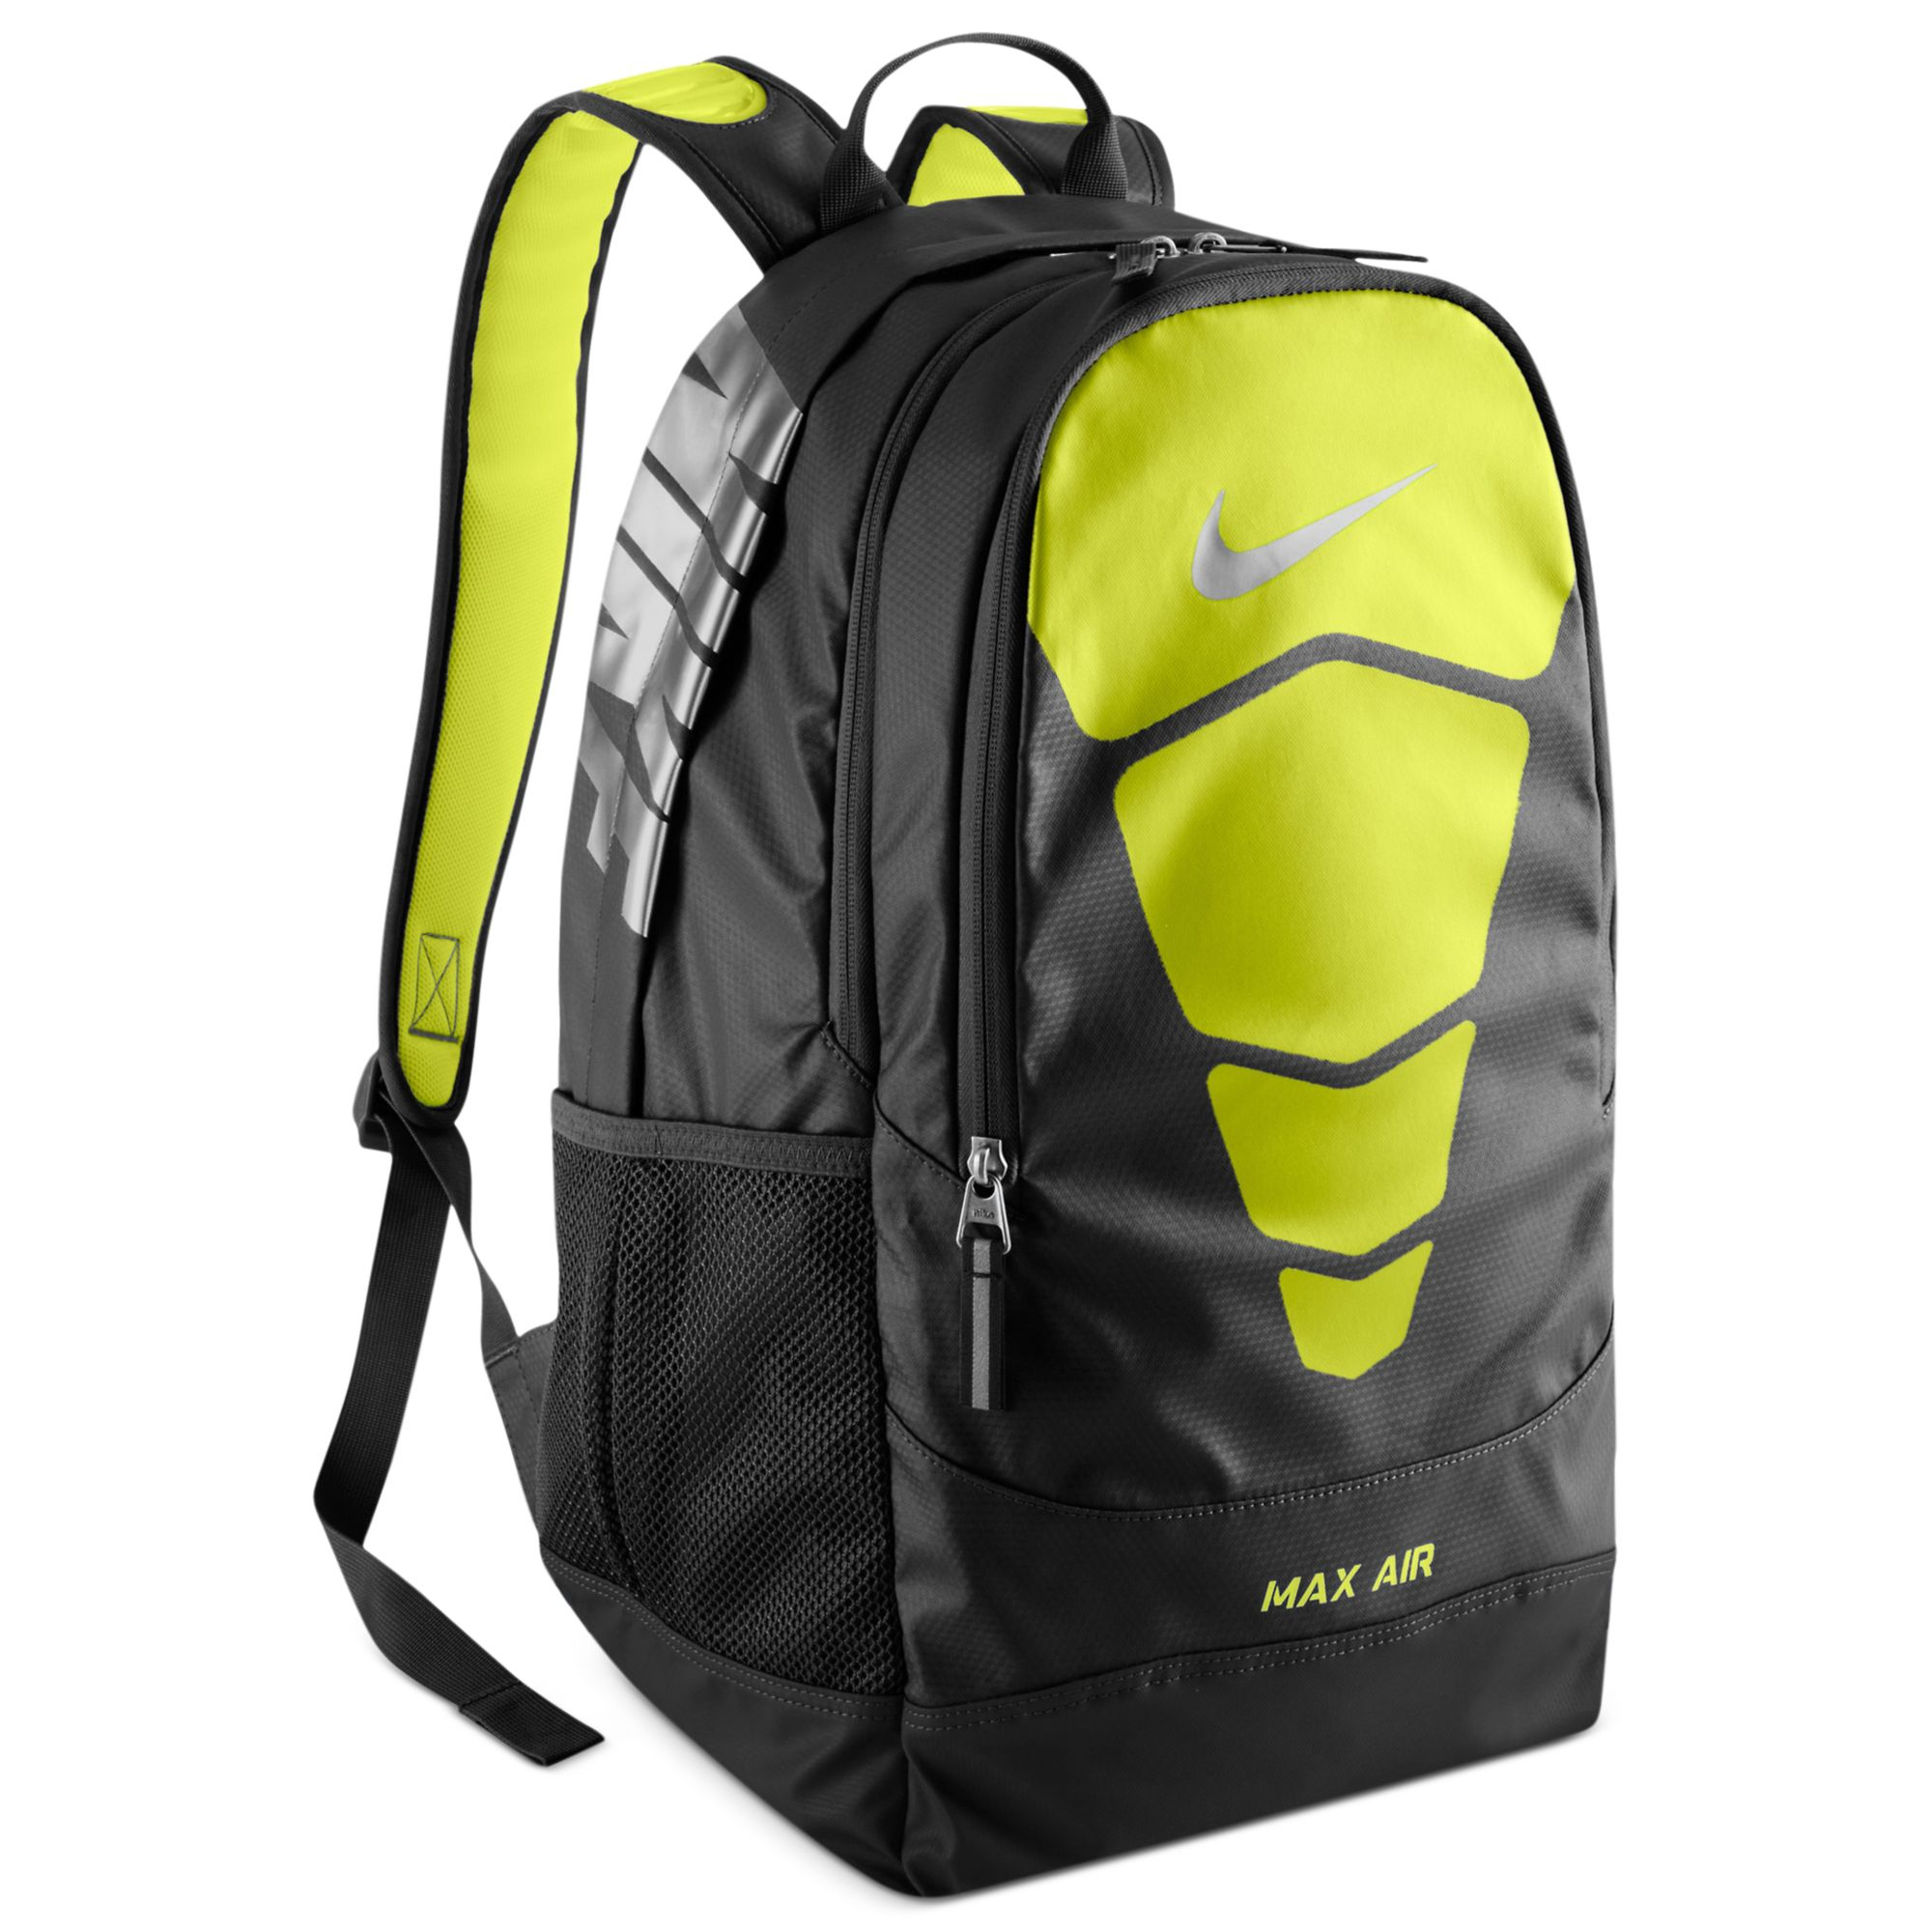 Nike Vapor Max Air Backpack In Yellow For Men Lyst